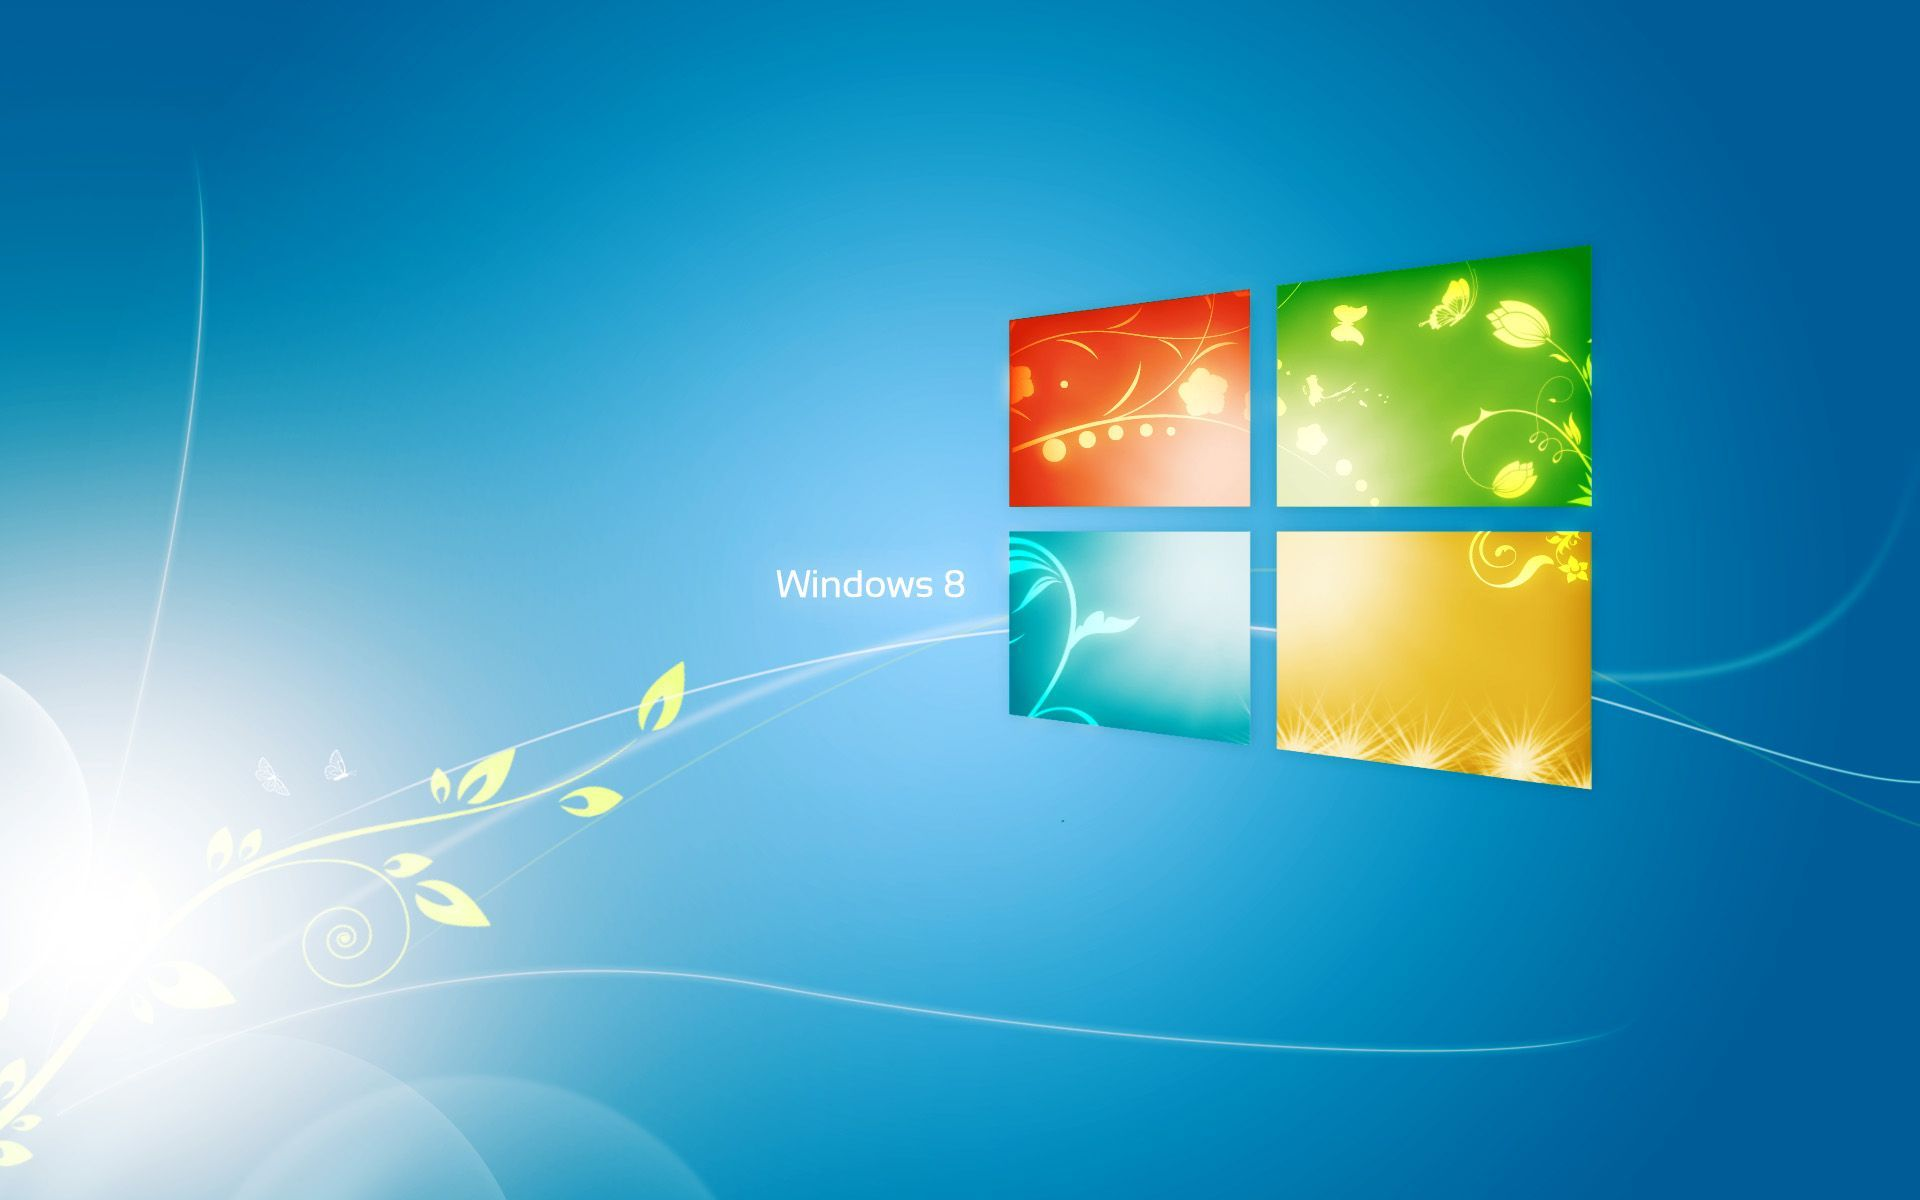 Windows Wallpaper Hd 1080p Posted By Ryan Simpson